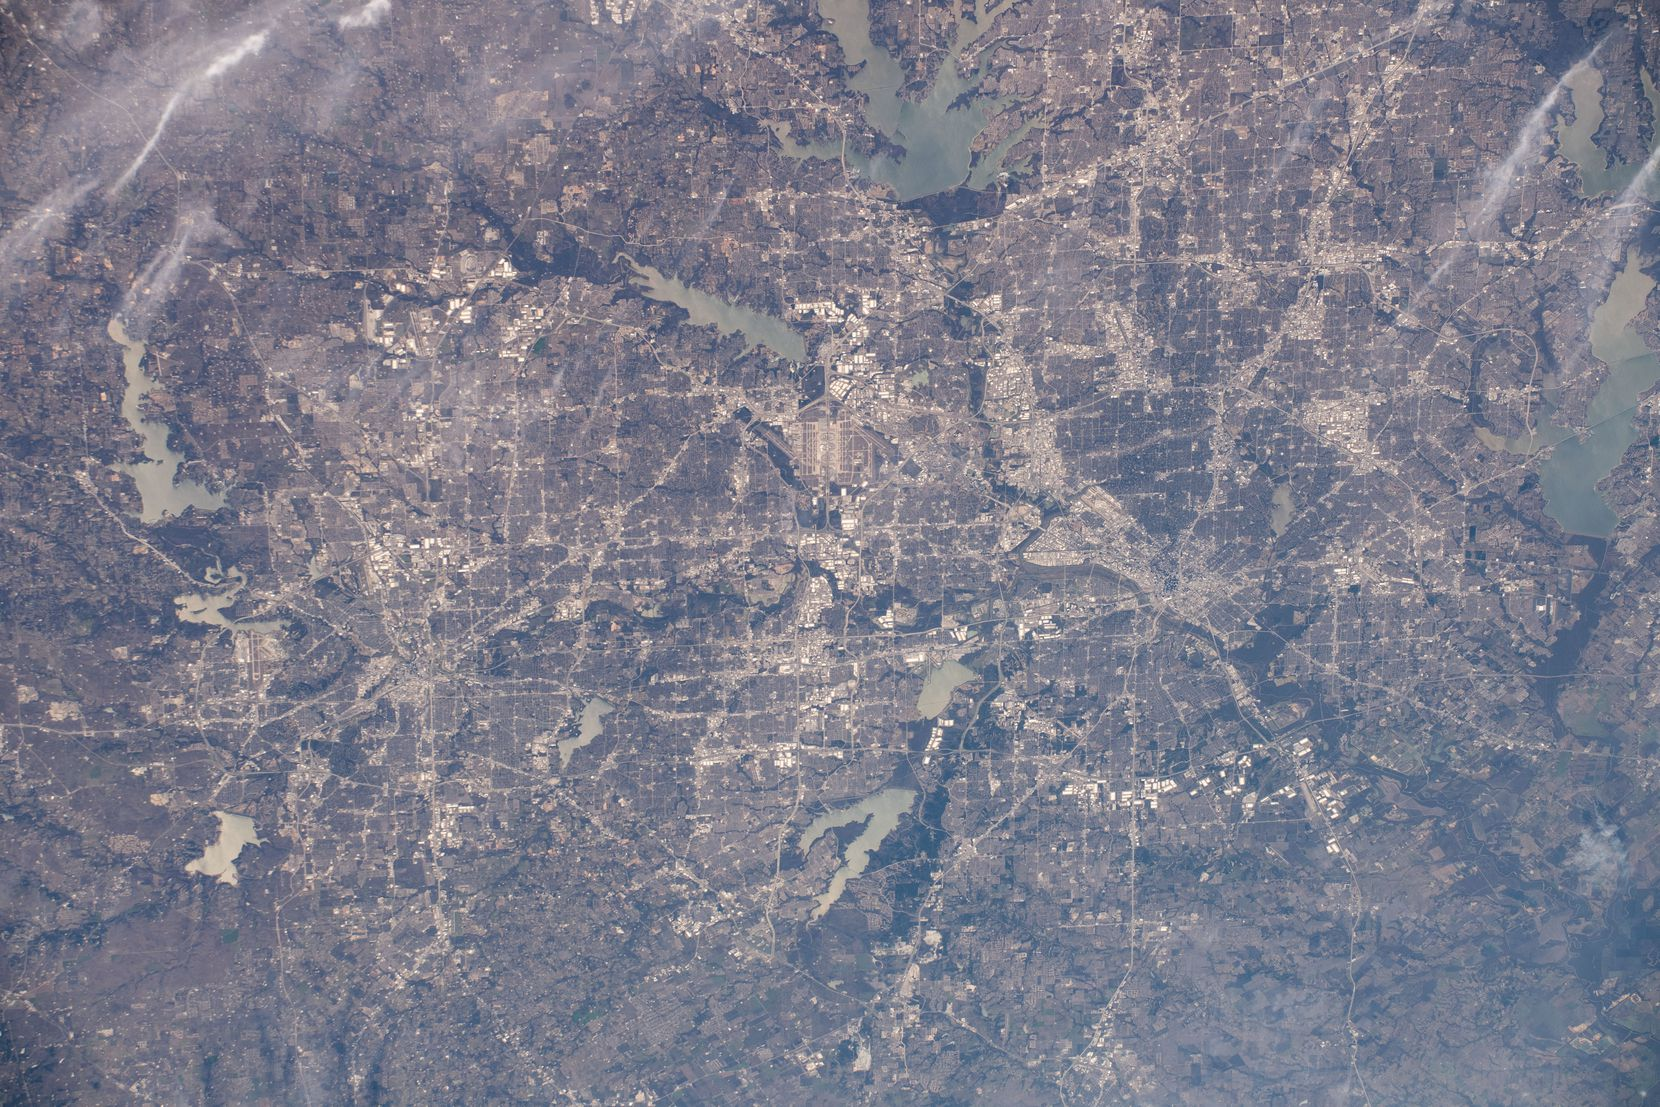 iss061e067843 (Dec. 6, 2019) --- The Dallas-Fort Worth, Texas metropolitan area is pictured along with such landmarks as DFW International Airport and Dallas Love Field Airport from an altitude of 258 miles. Several bodies of water are pictured including Joe Pool Lake, Mountain Creek Lake, White Rock Lake, Lake Ray Hubbard, Lewisville Lake and Grapevine Lake among others.